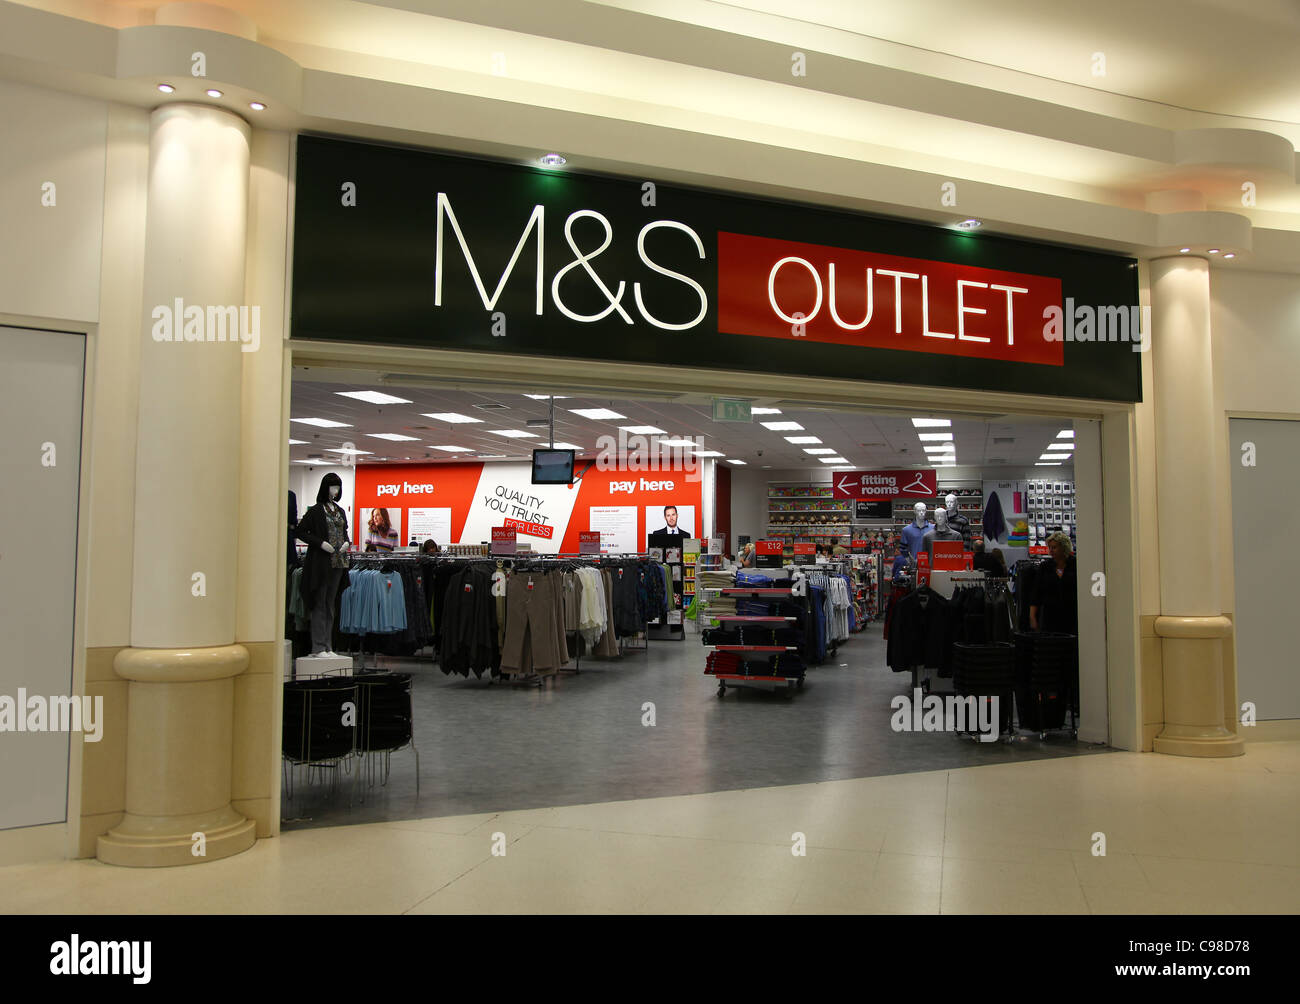 the-marks-and-spencer-shop-at-freeport-talke-outlet-shopping-centre-C98D78.jpg